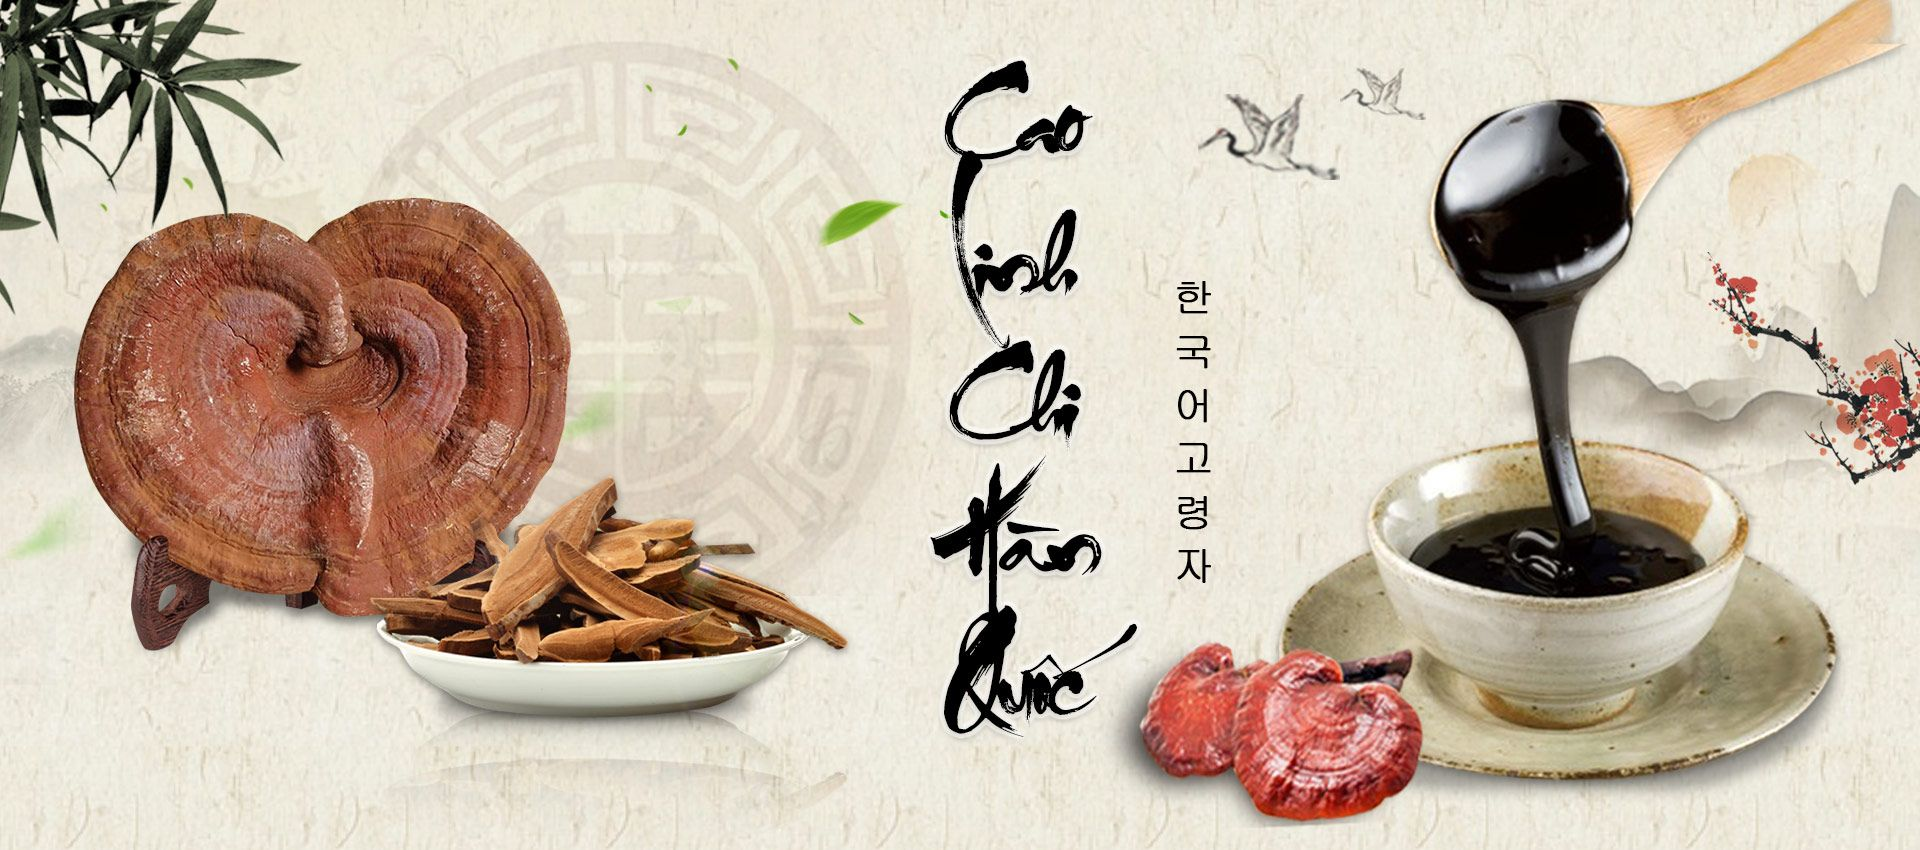 banner danh muc cao linh chi pc